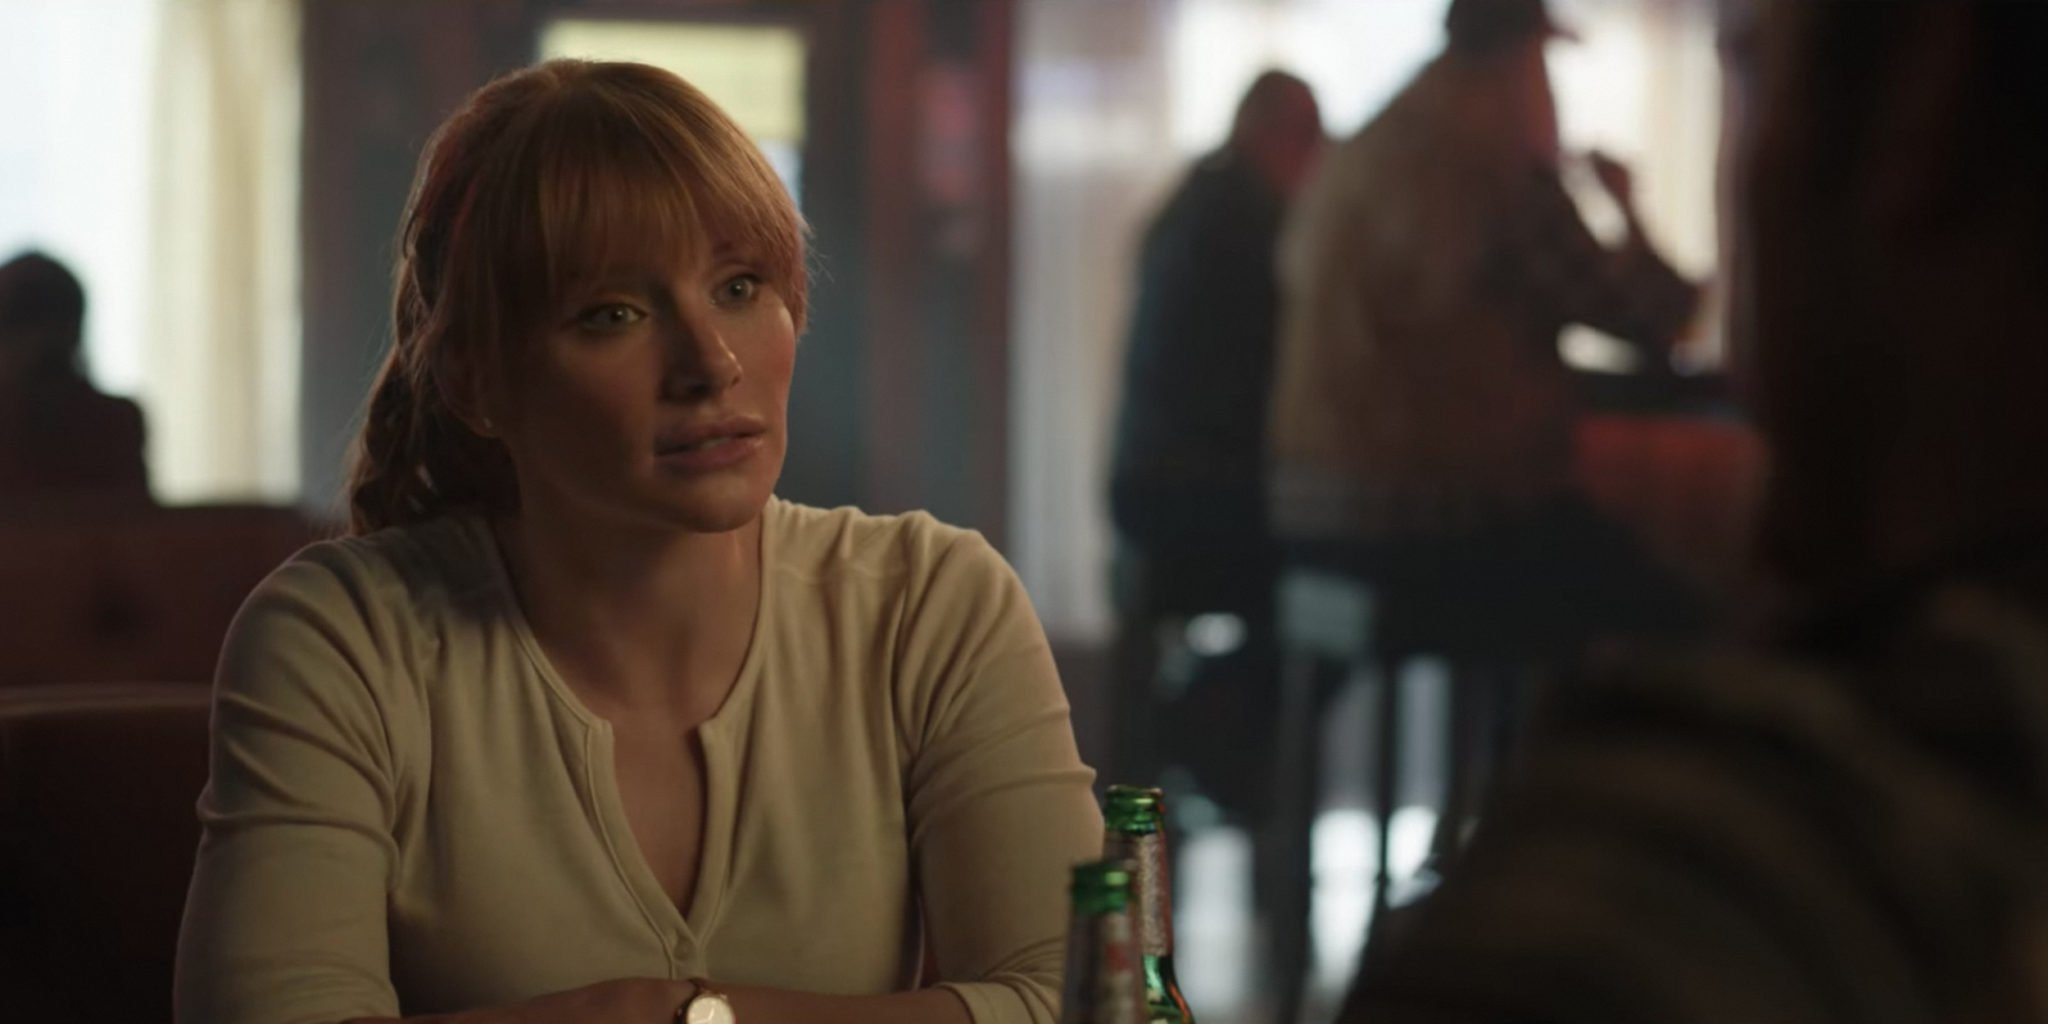 Jurassic World Fallen Kingdom Review Bryce Dallas Howard as Claire Dearing